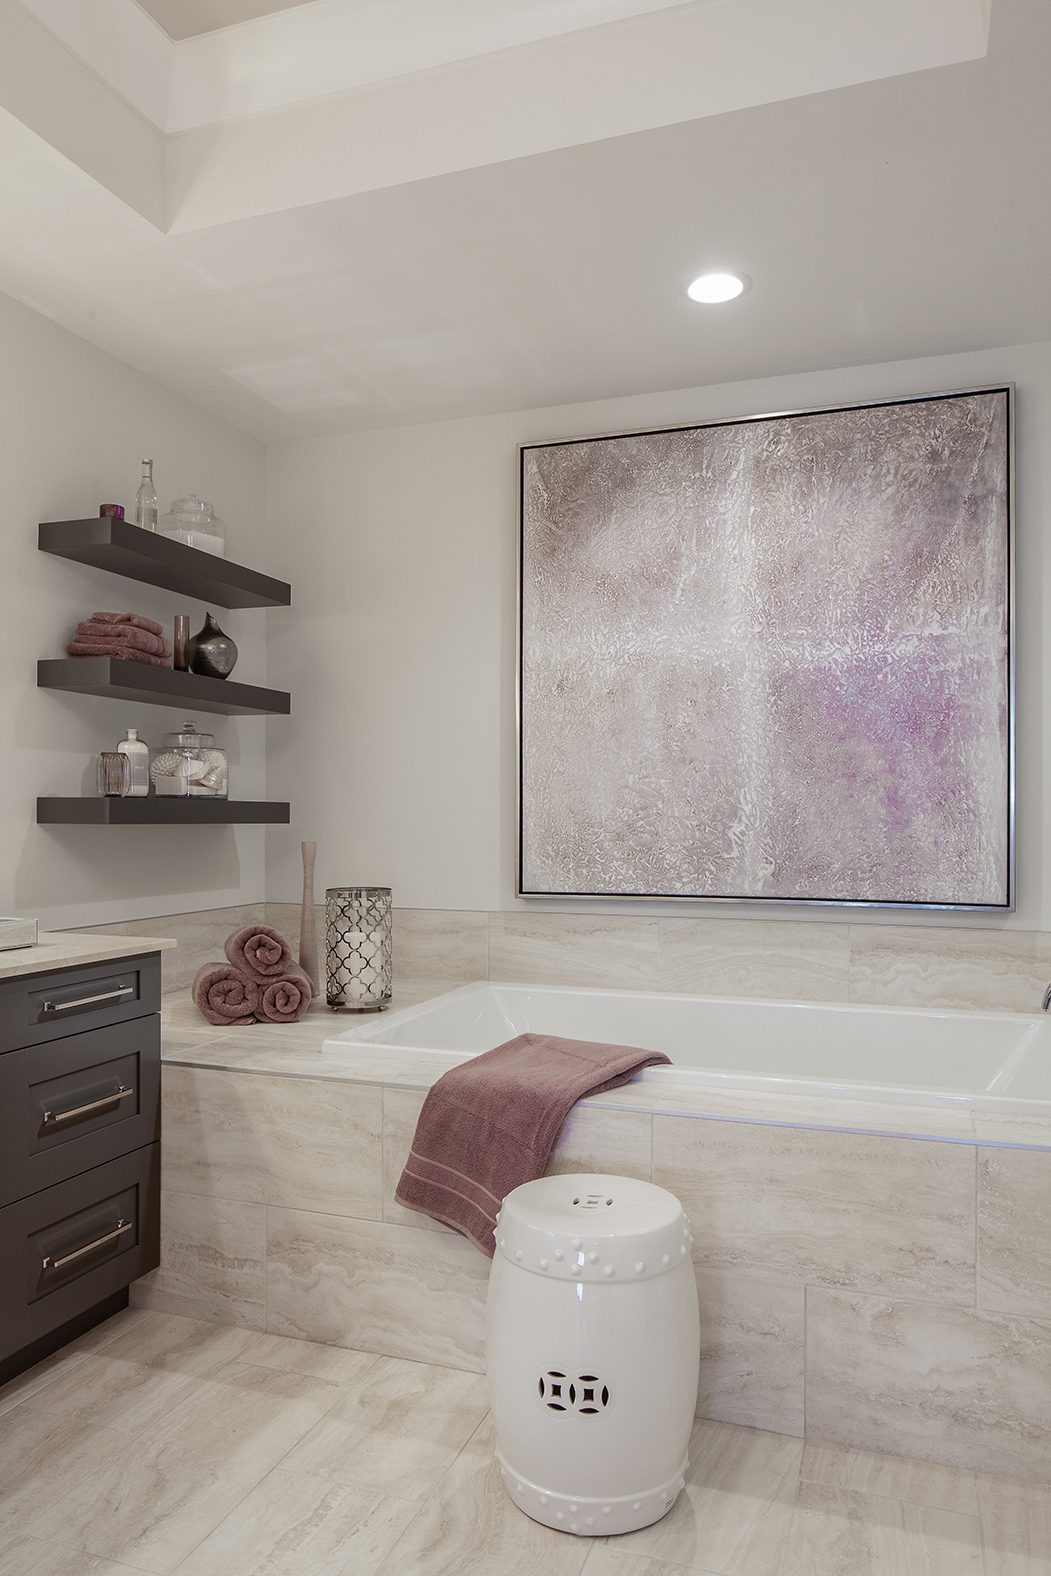 """Purple holds a great deal of sentimental value to the couple I worked with in this unit and they always weave it into their home no matter where they are located,"" says Hall. Here, she used the color in a comfortable bathroom. Artwork over the tub incorporates the color and creates the base palette for the room. From there, she uses open shelving for a spa-like feel and added glass elements for sparkle and glamour. The espresso cabinets and shelves bring out the purple and warm the space."